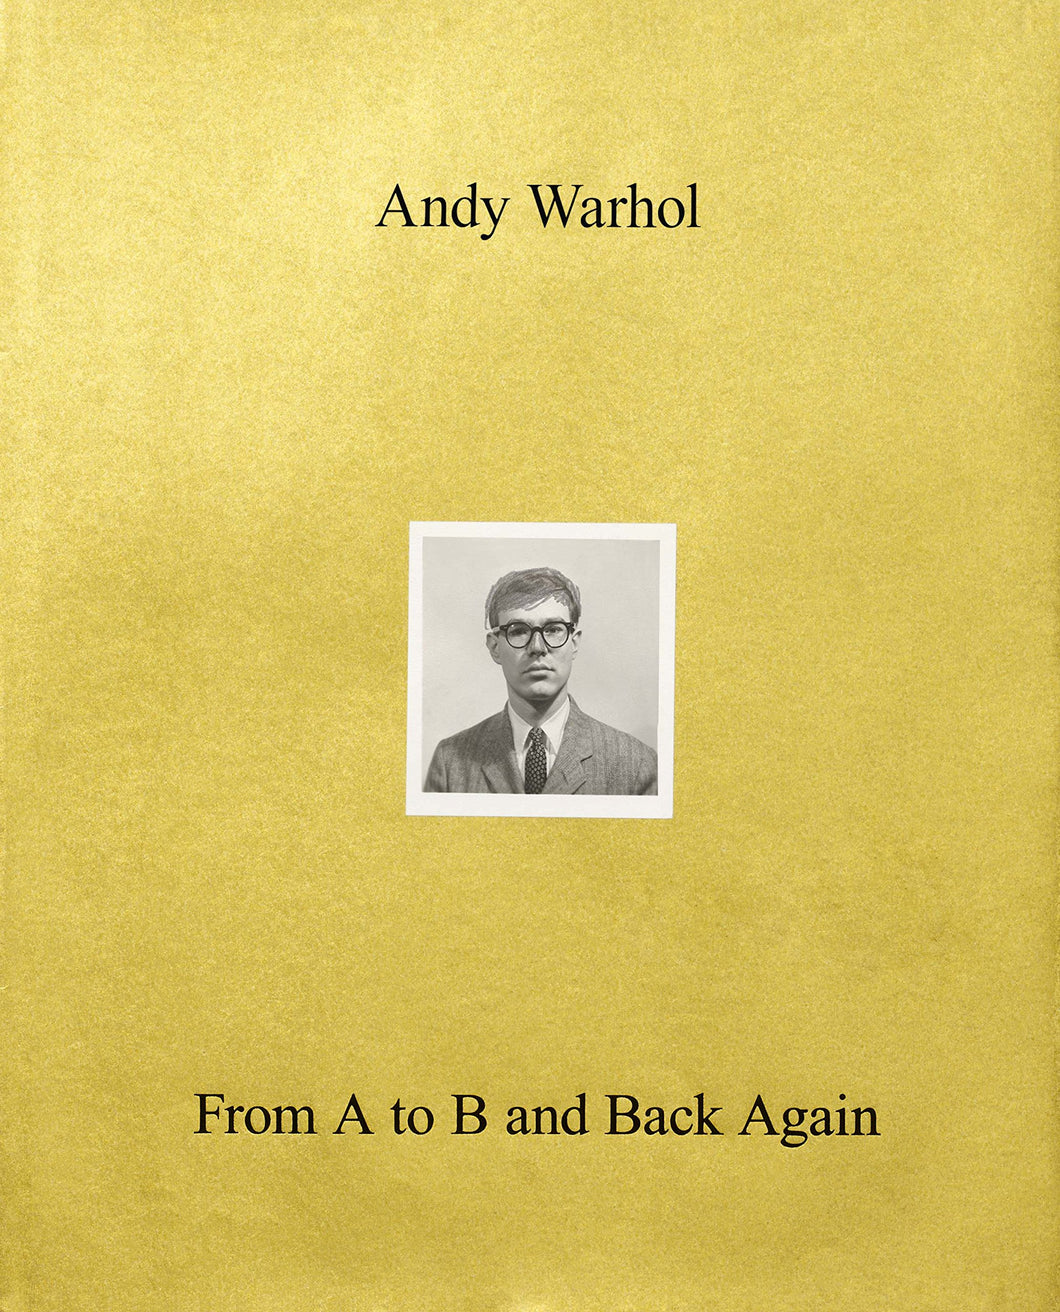 Andy Warhol―From A to B and Back Again - Vancelette Global Art Acquisitions